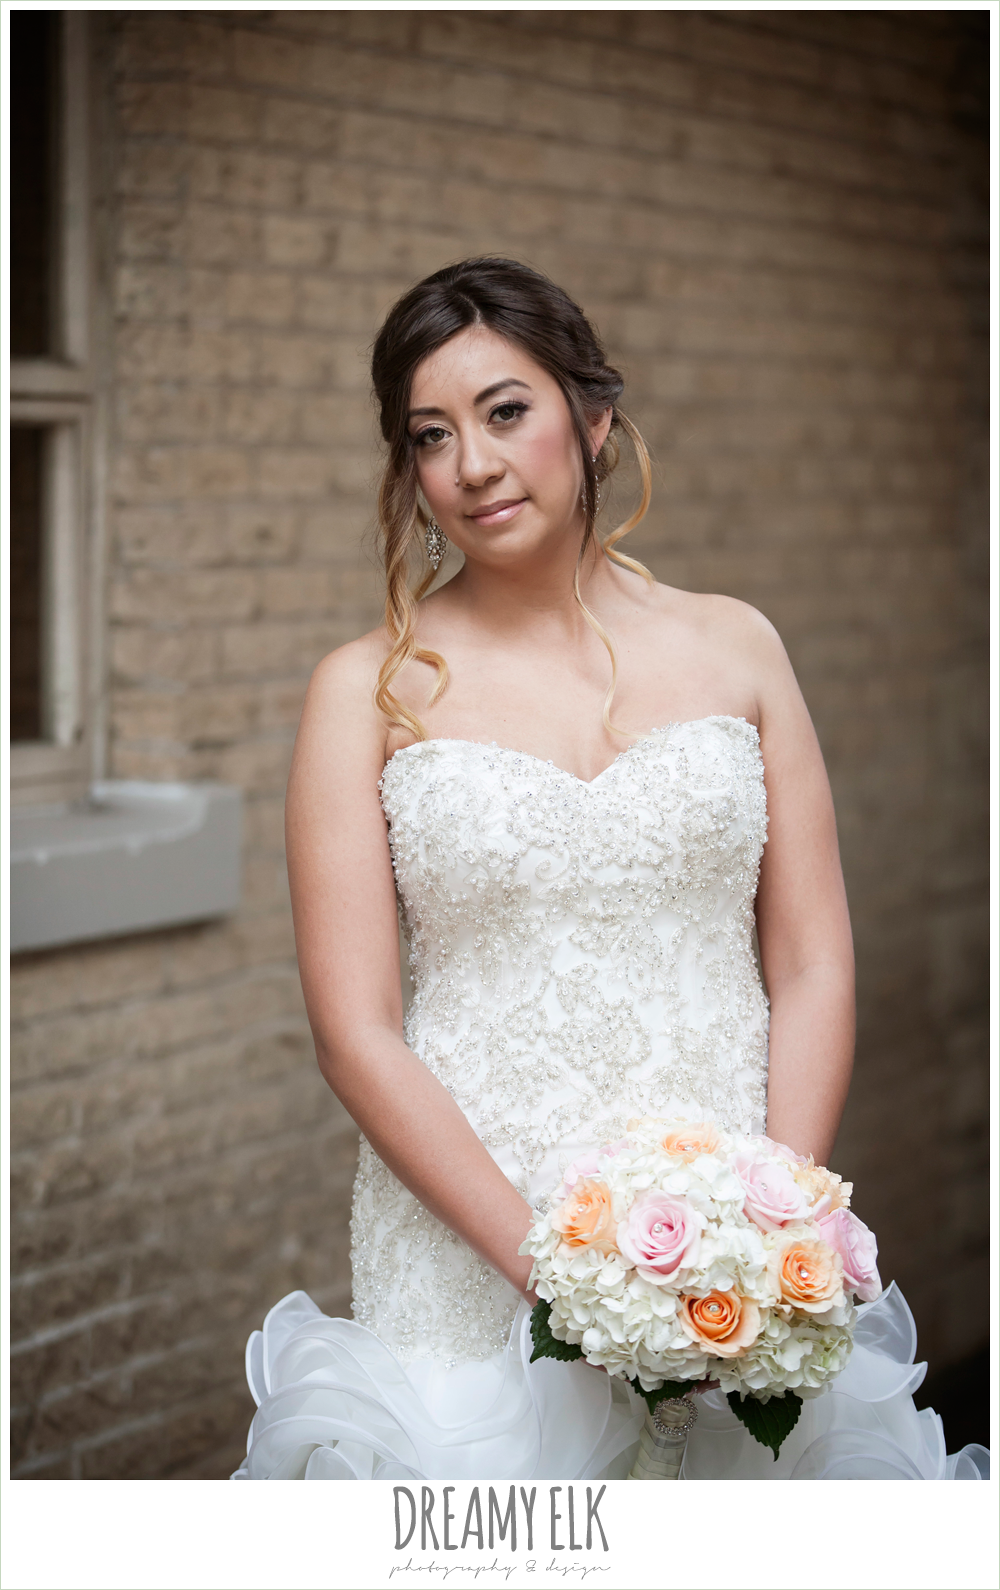 ruthie&trent {wedding} terradorna, austin, texas — Dreamy Elk ...